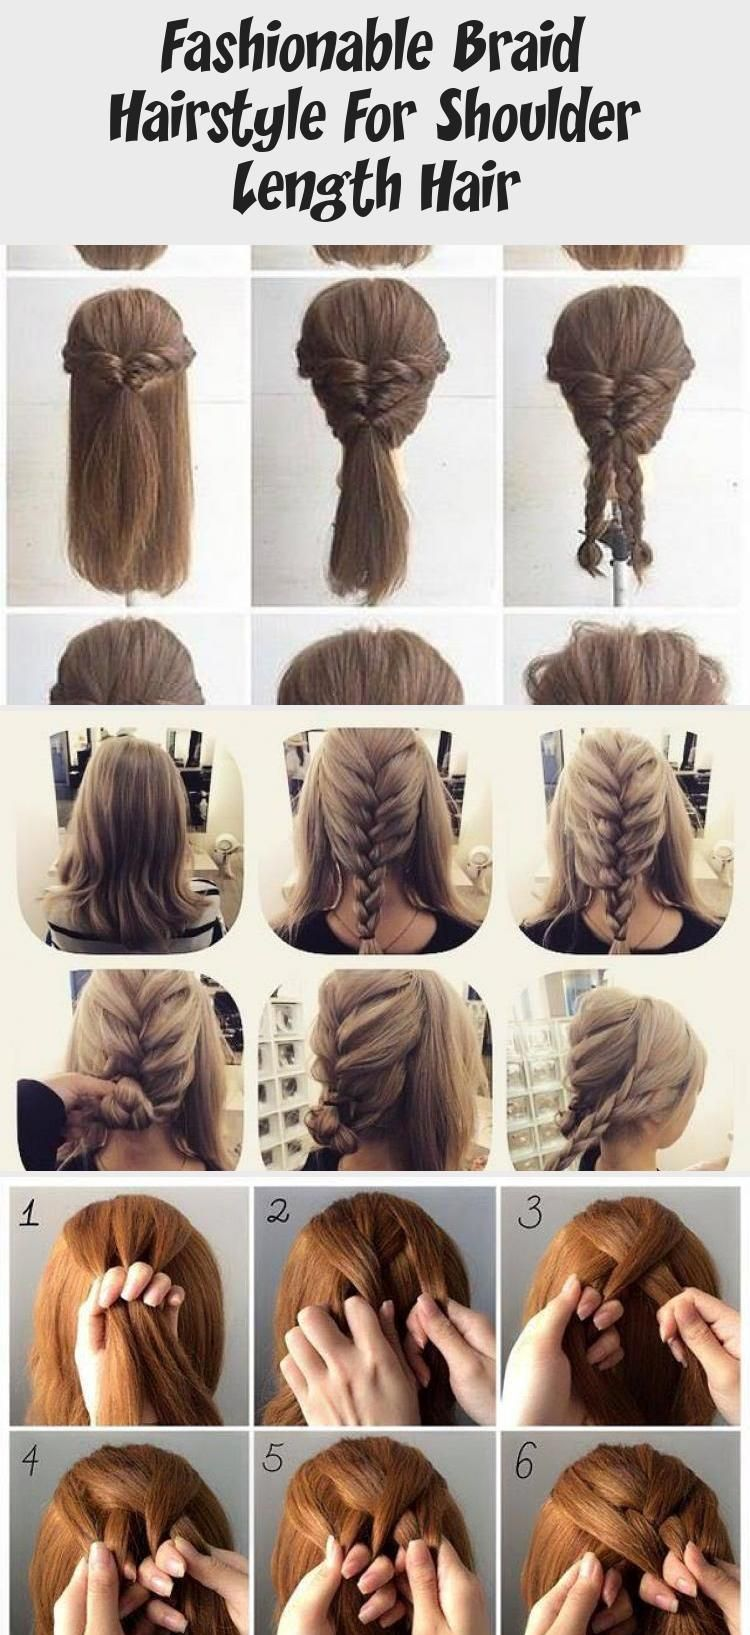 Fashionable Braid Hairstyle For Shoulder Length Hair Shoulder Length Hair Tuto Braid Fashionable Ha In 2020 Shoulder Length Hair Hair Lengths Braided Hairstyles